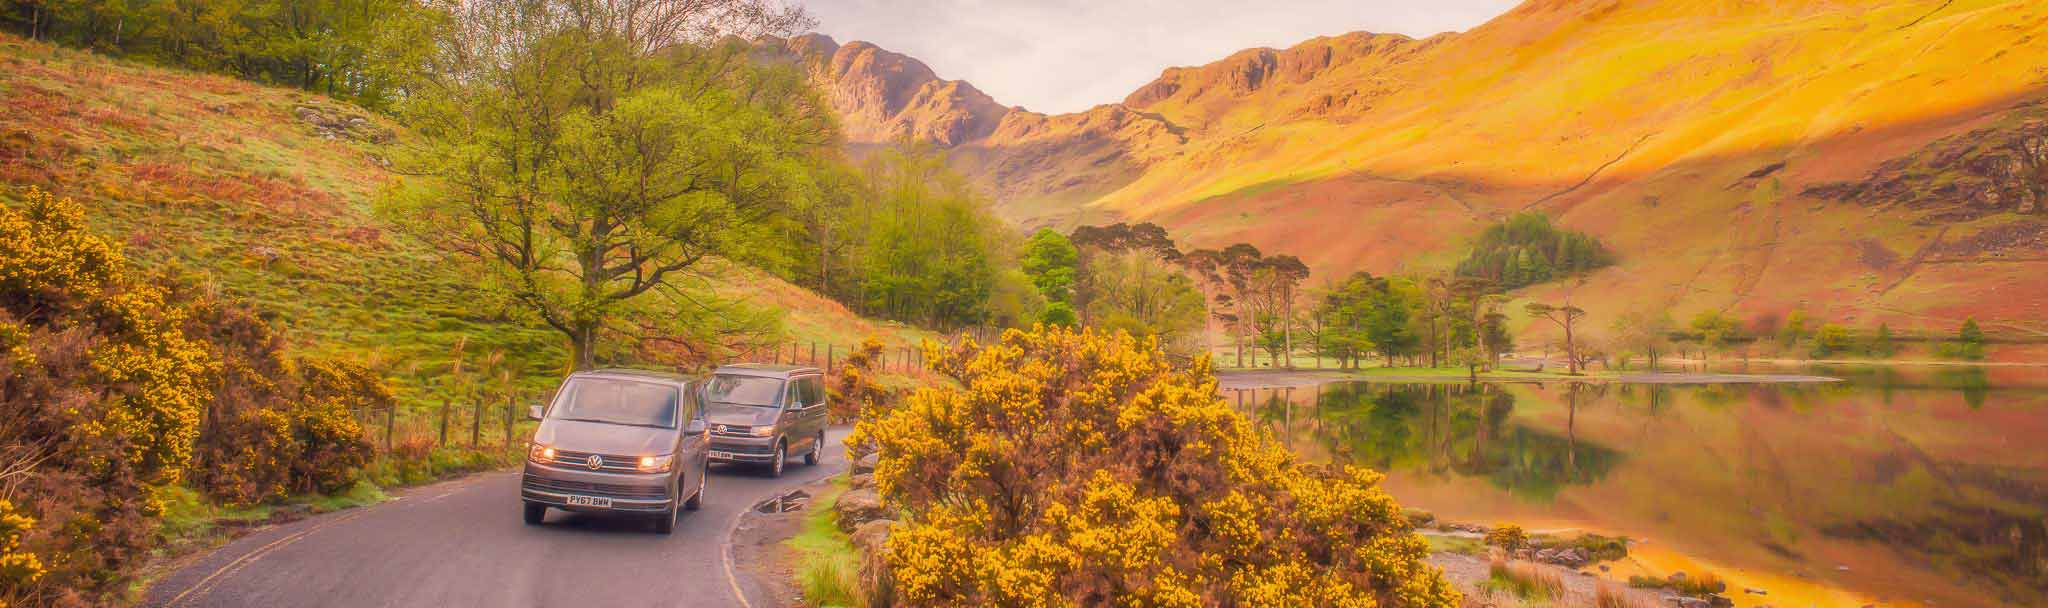 vw camper hire in the lake district